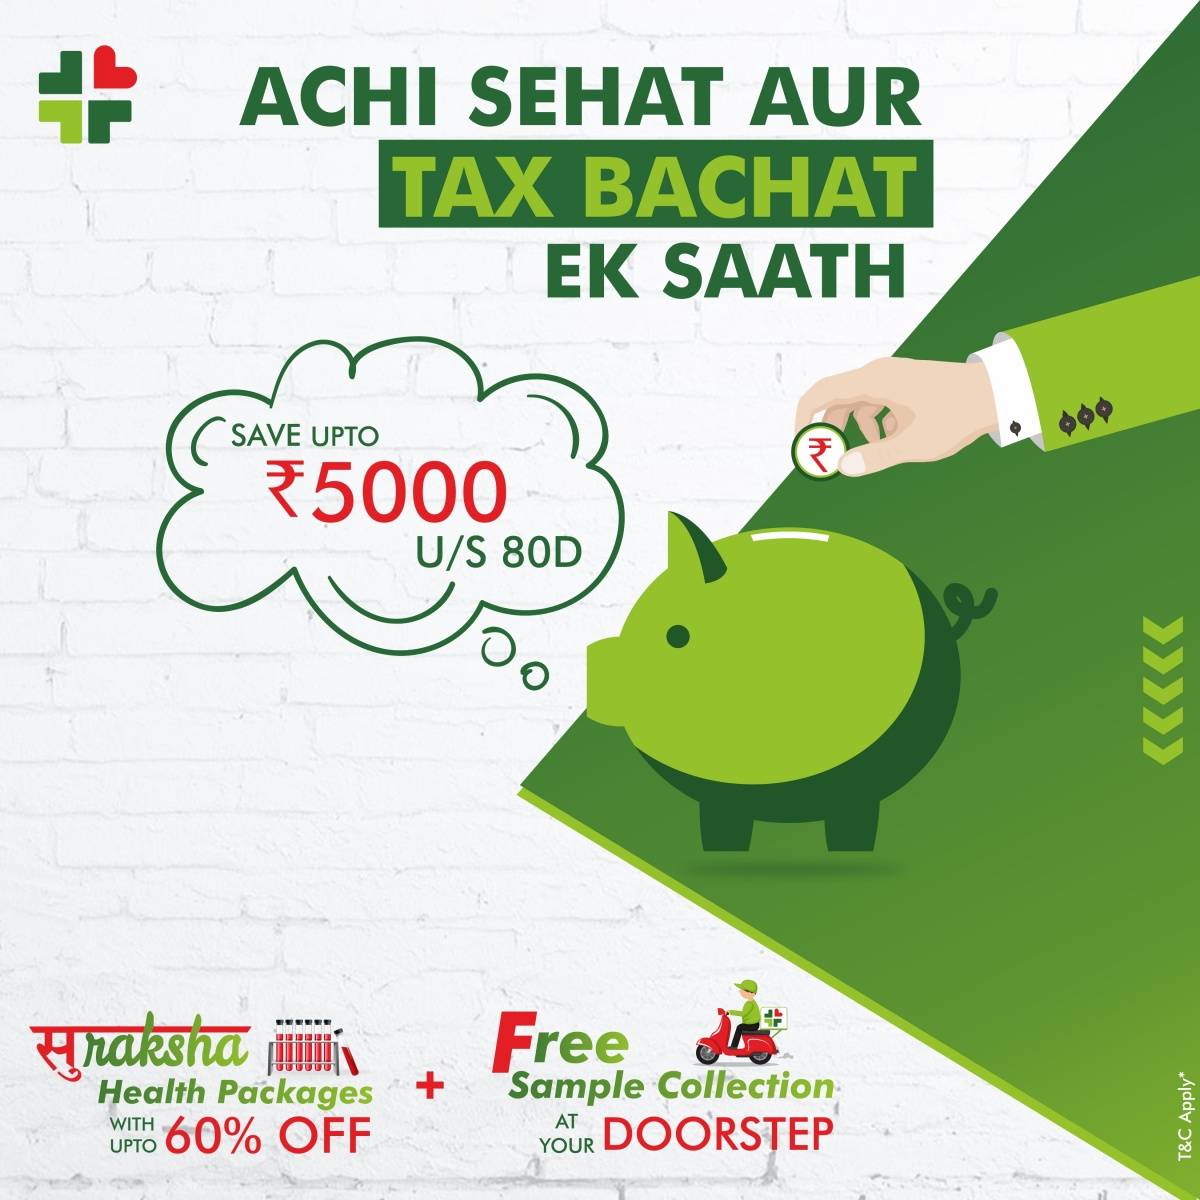 Save Tax with Suraksha Health Packages U/S 80D